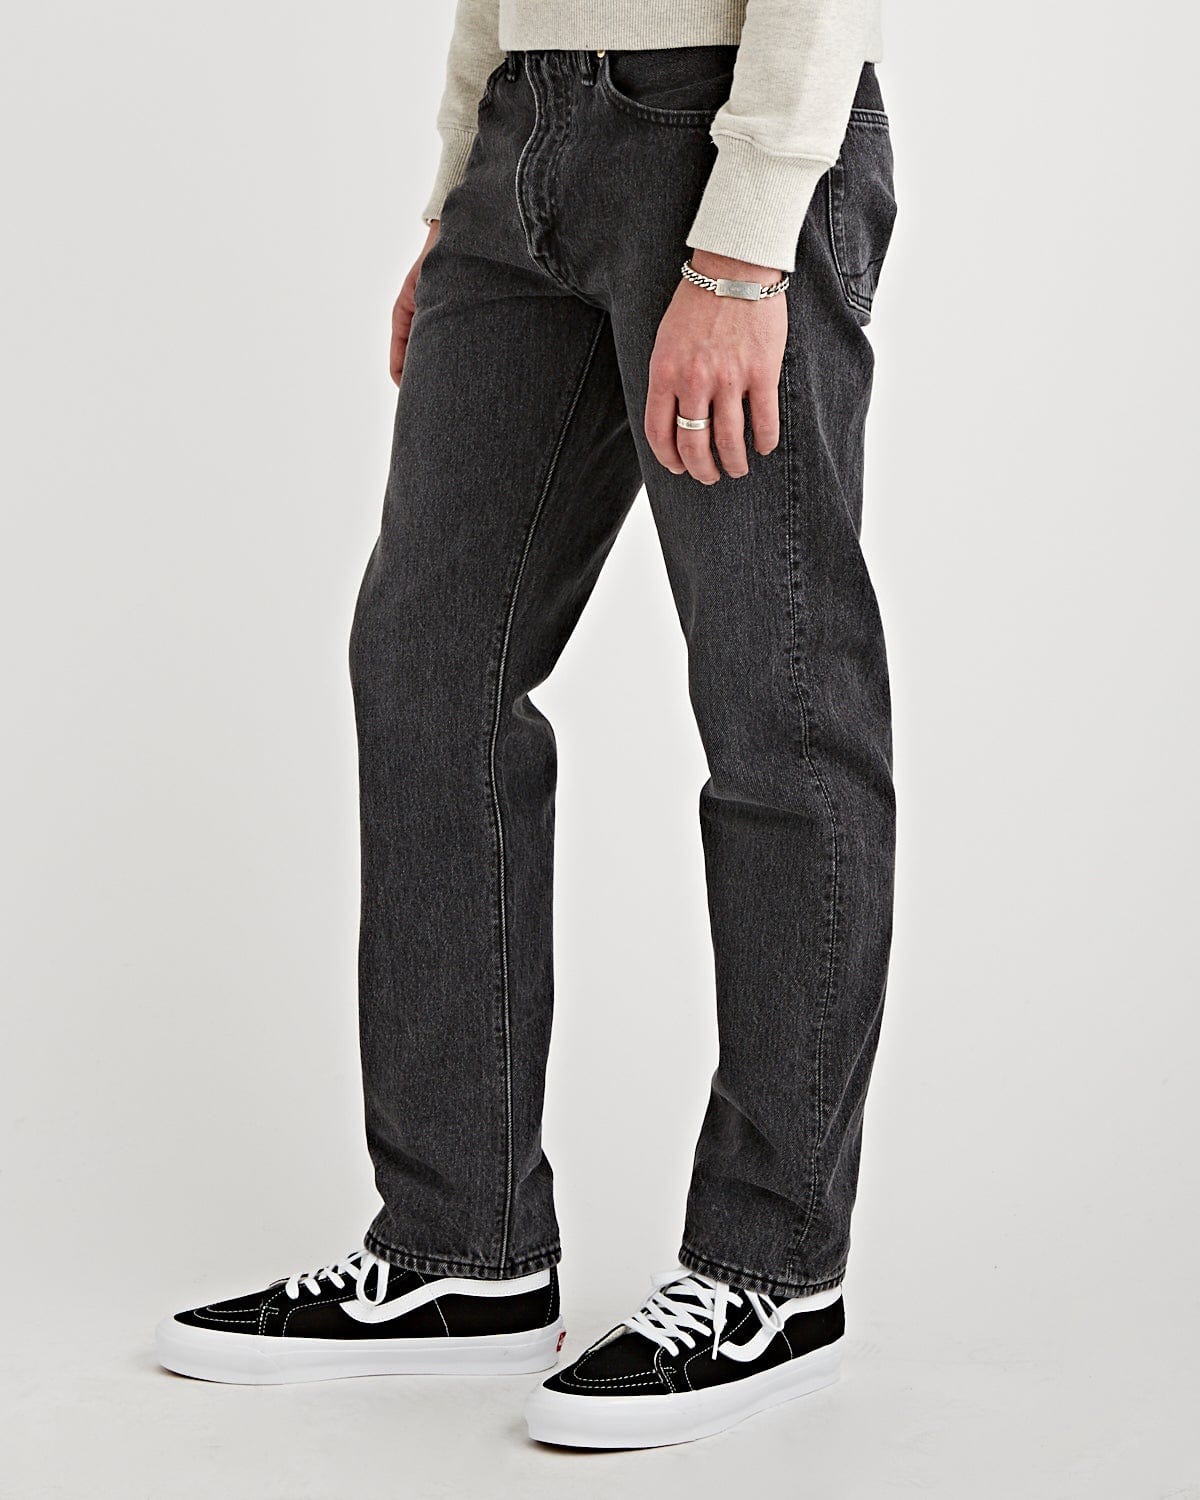 107 Denim Stone Wash Black